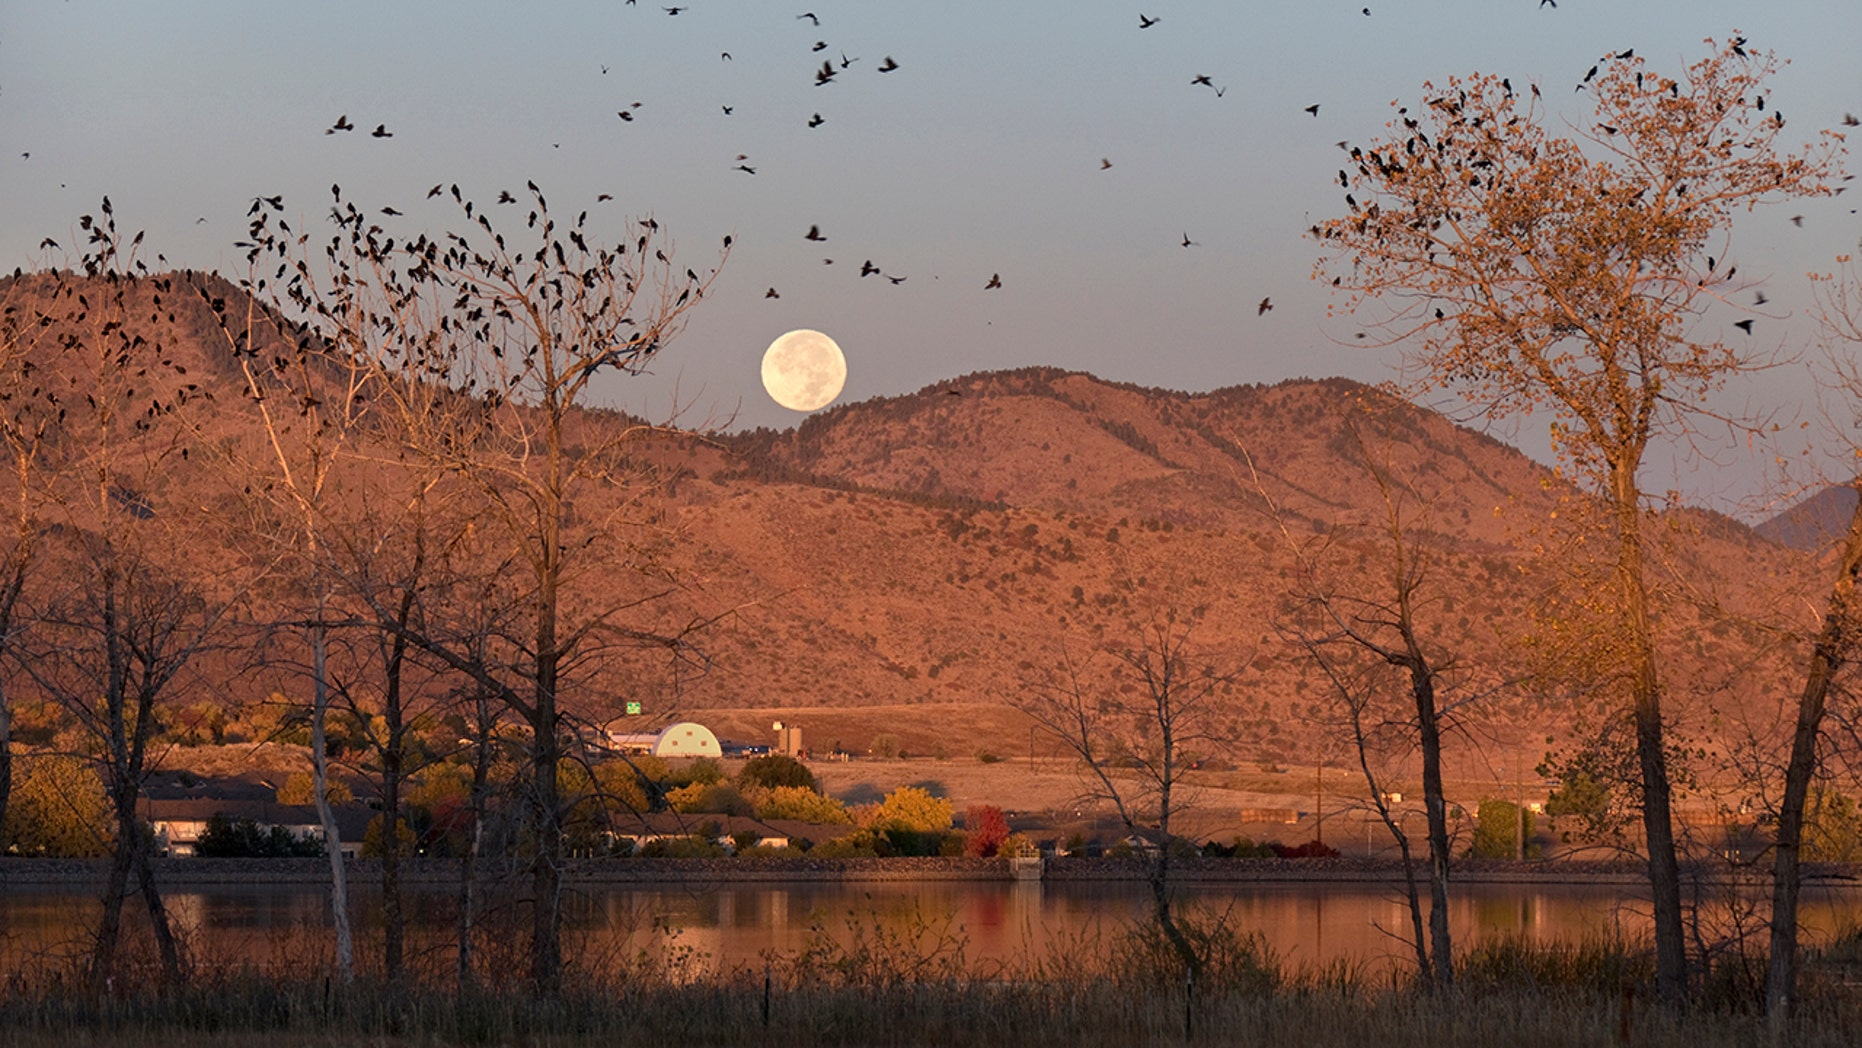 A massive 'Hunter's Moon' will be visible in the sky tonight